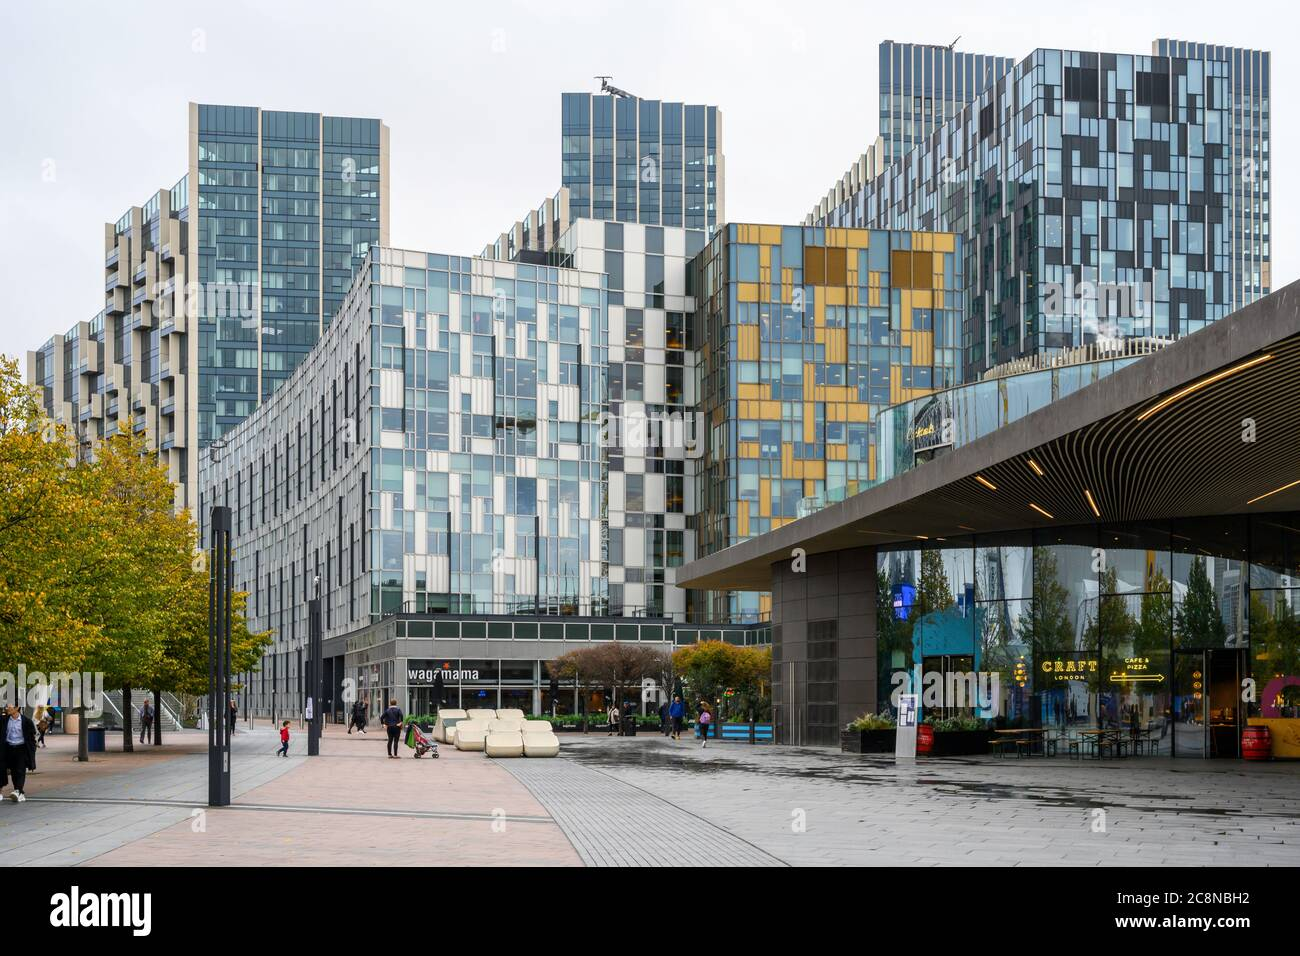 Peninsula Square is adjacent to the O2 Arena (Millennium Dome) in the Greenwich Peninsula, London, England, UK. Stock Photo